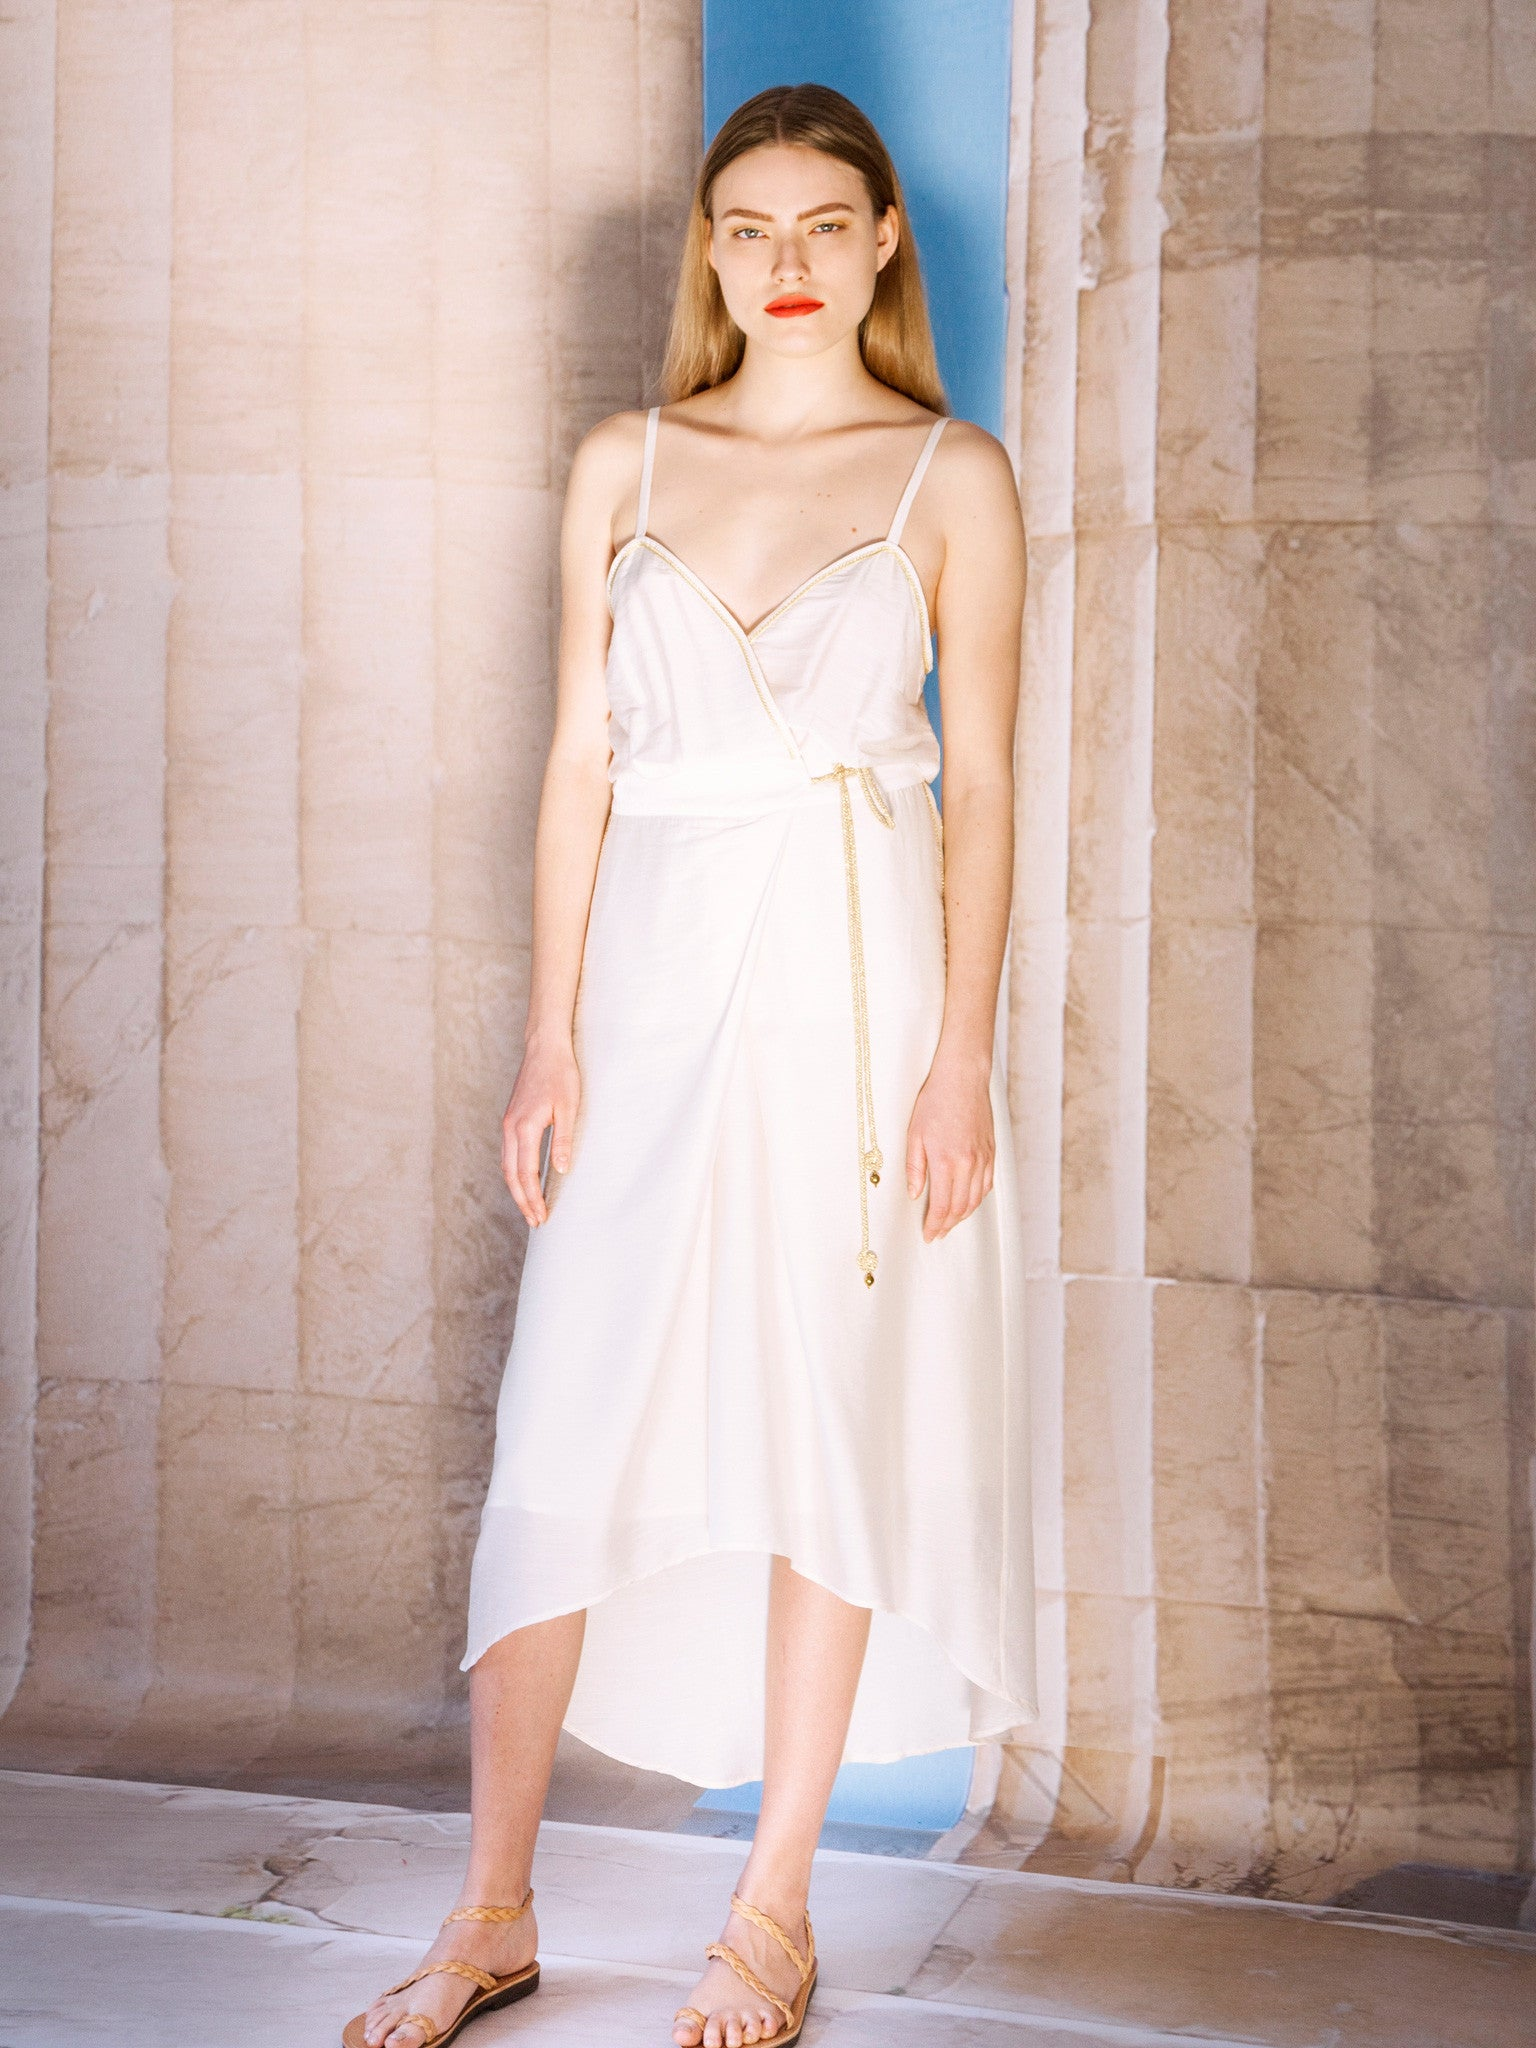 Samantha Sotos Women S Dresses At The Official Online Store